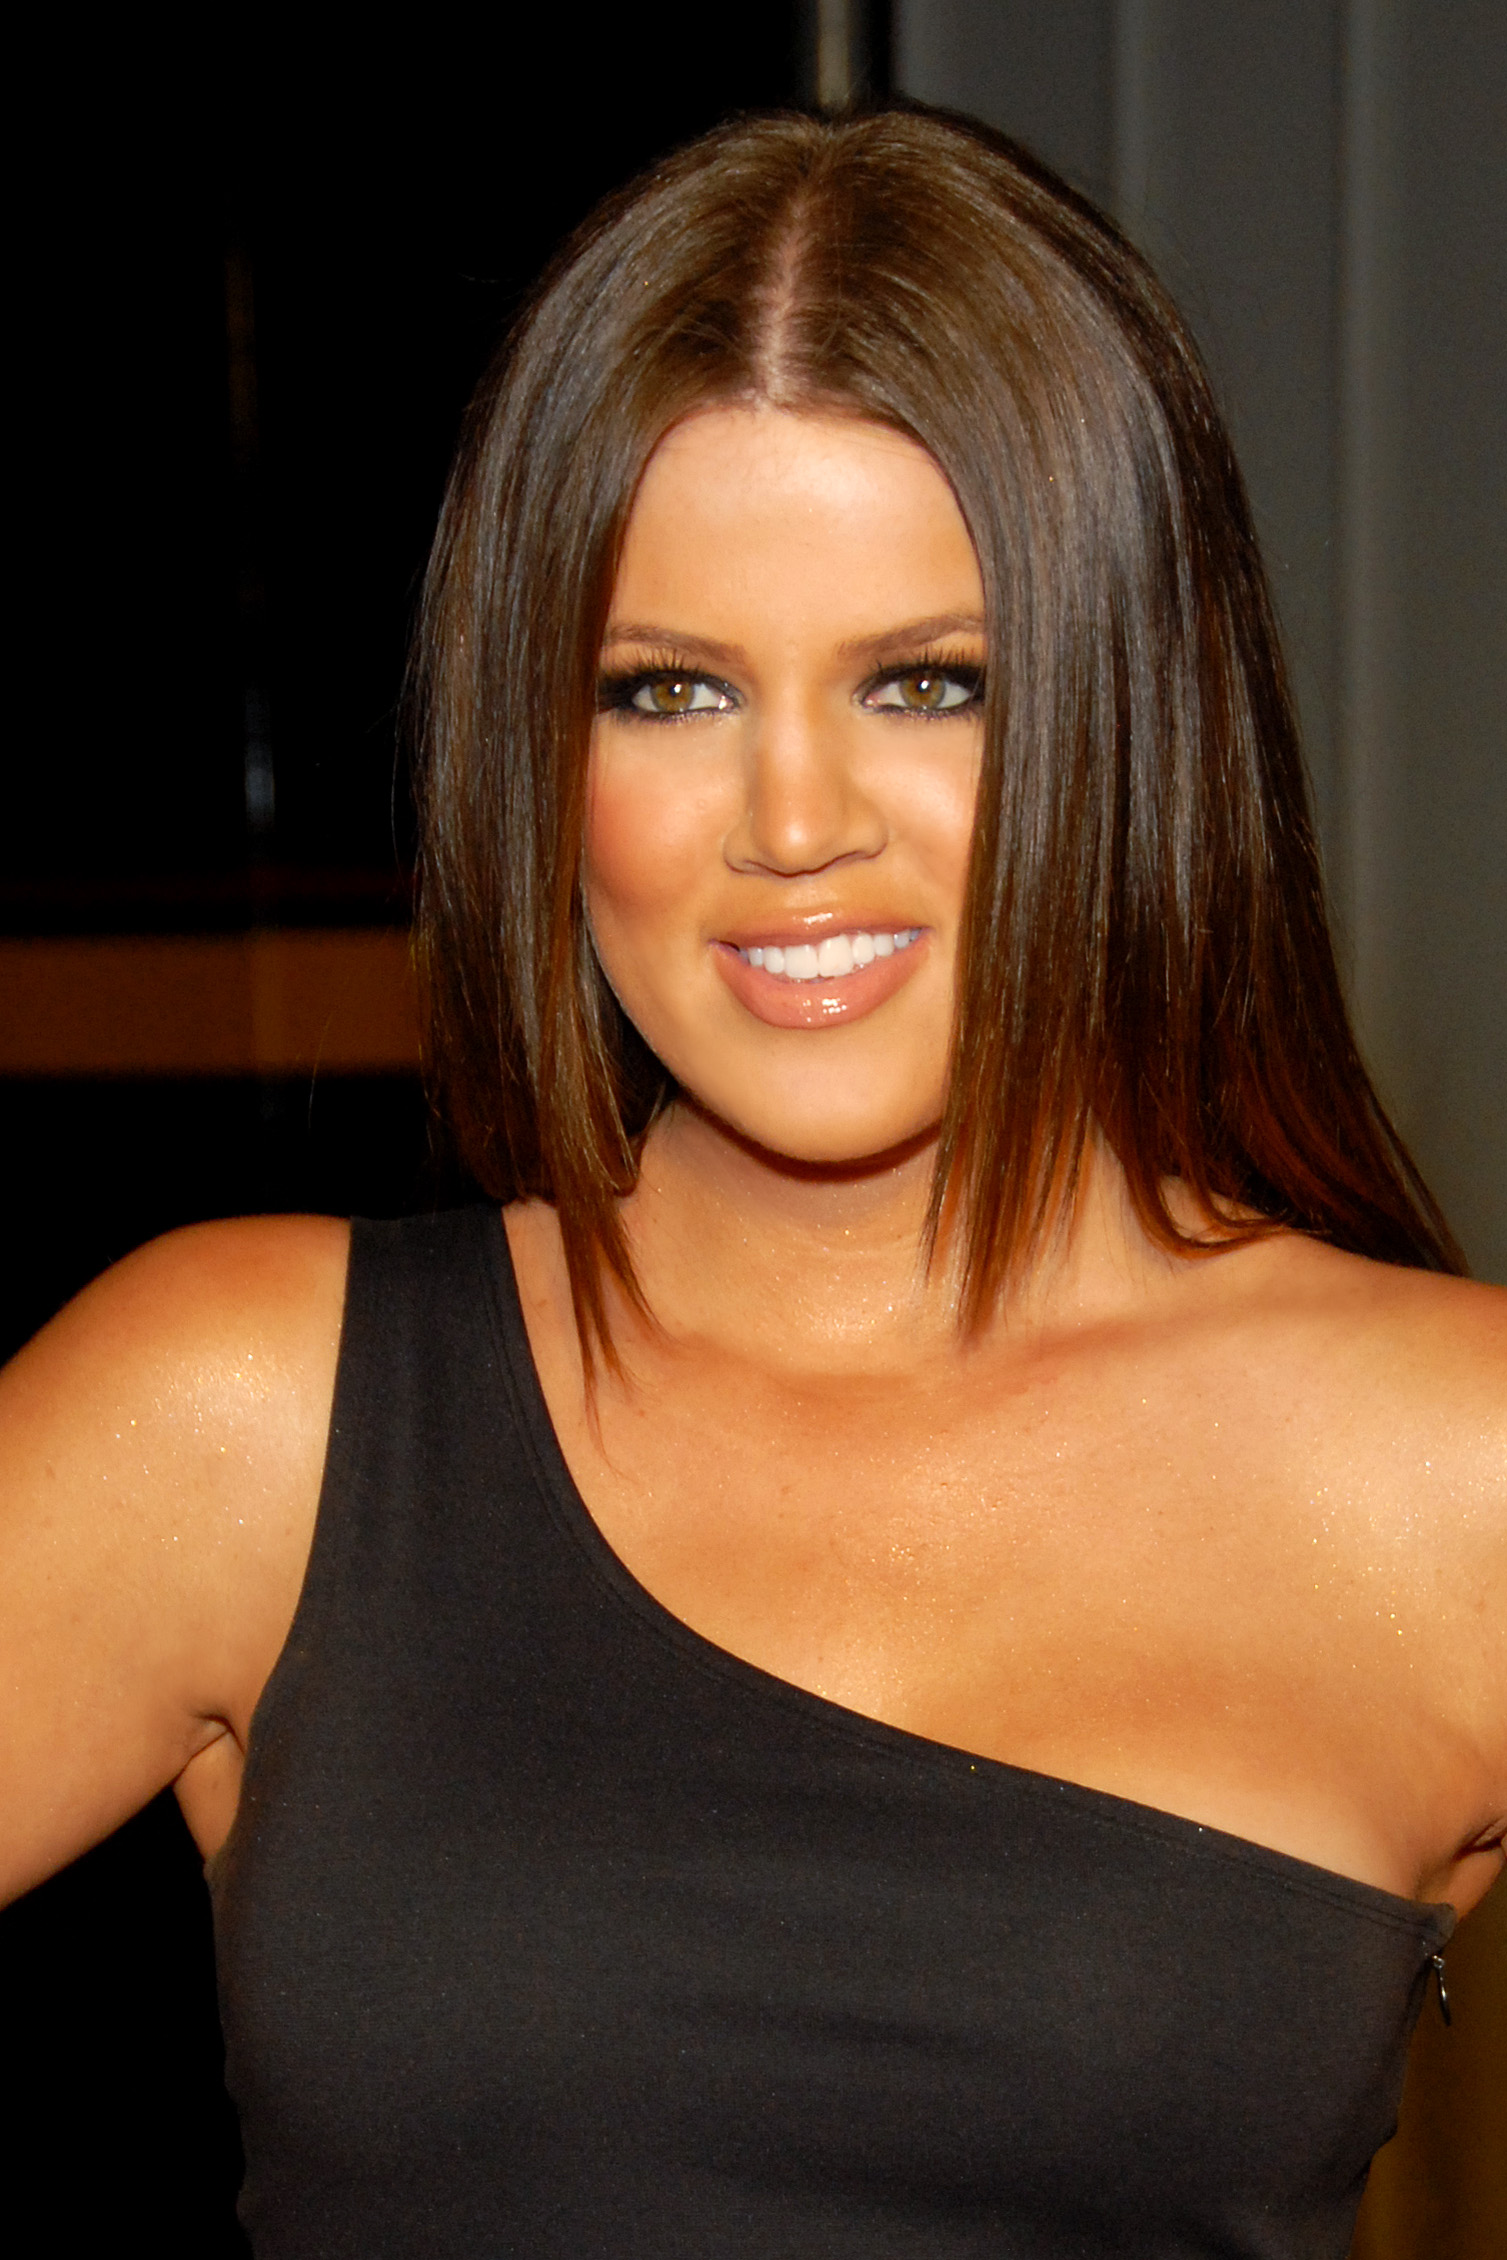 Khloe Kardashian Height - How Tall